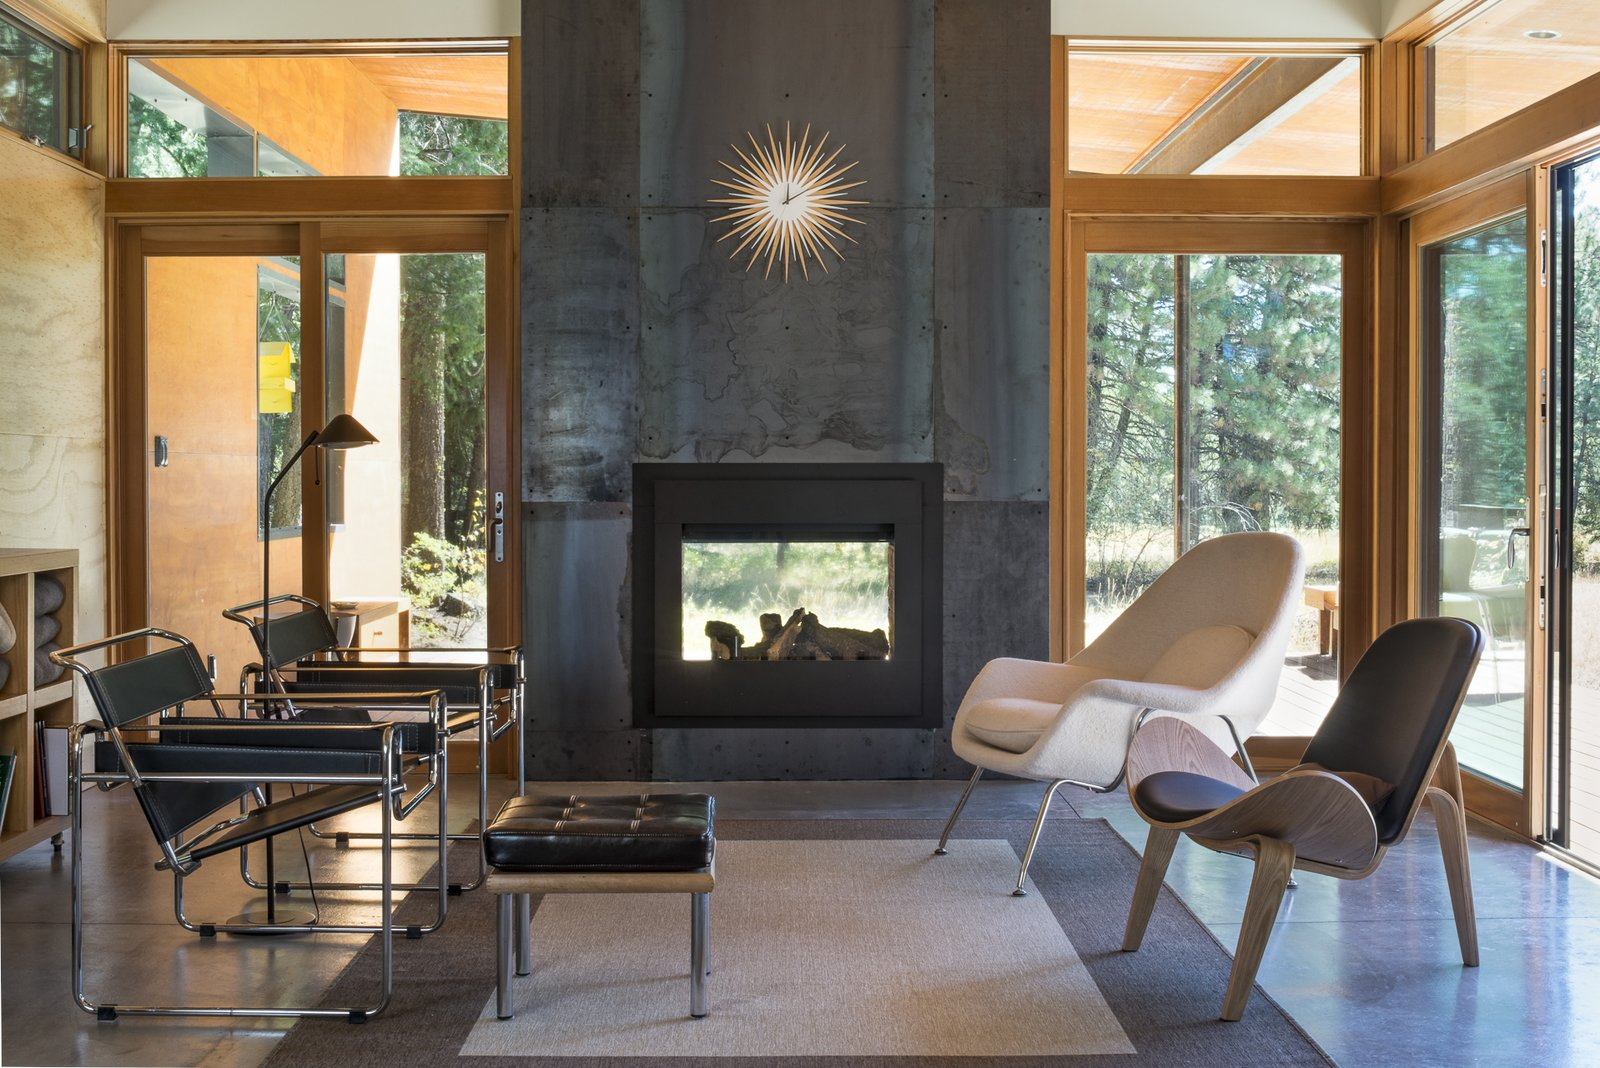 Photo 5 of 10 in A Lean Cabin in Washington Dismantles the Indoor/Outdoor Divide